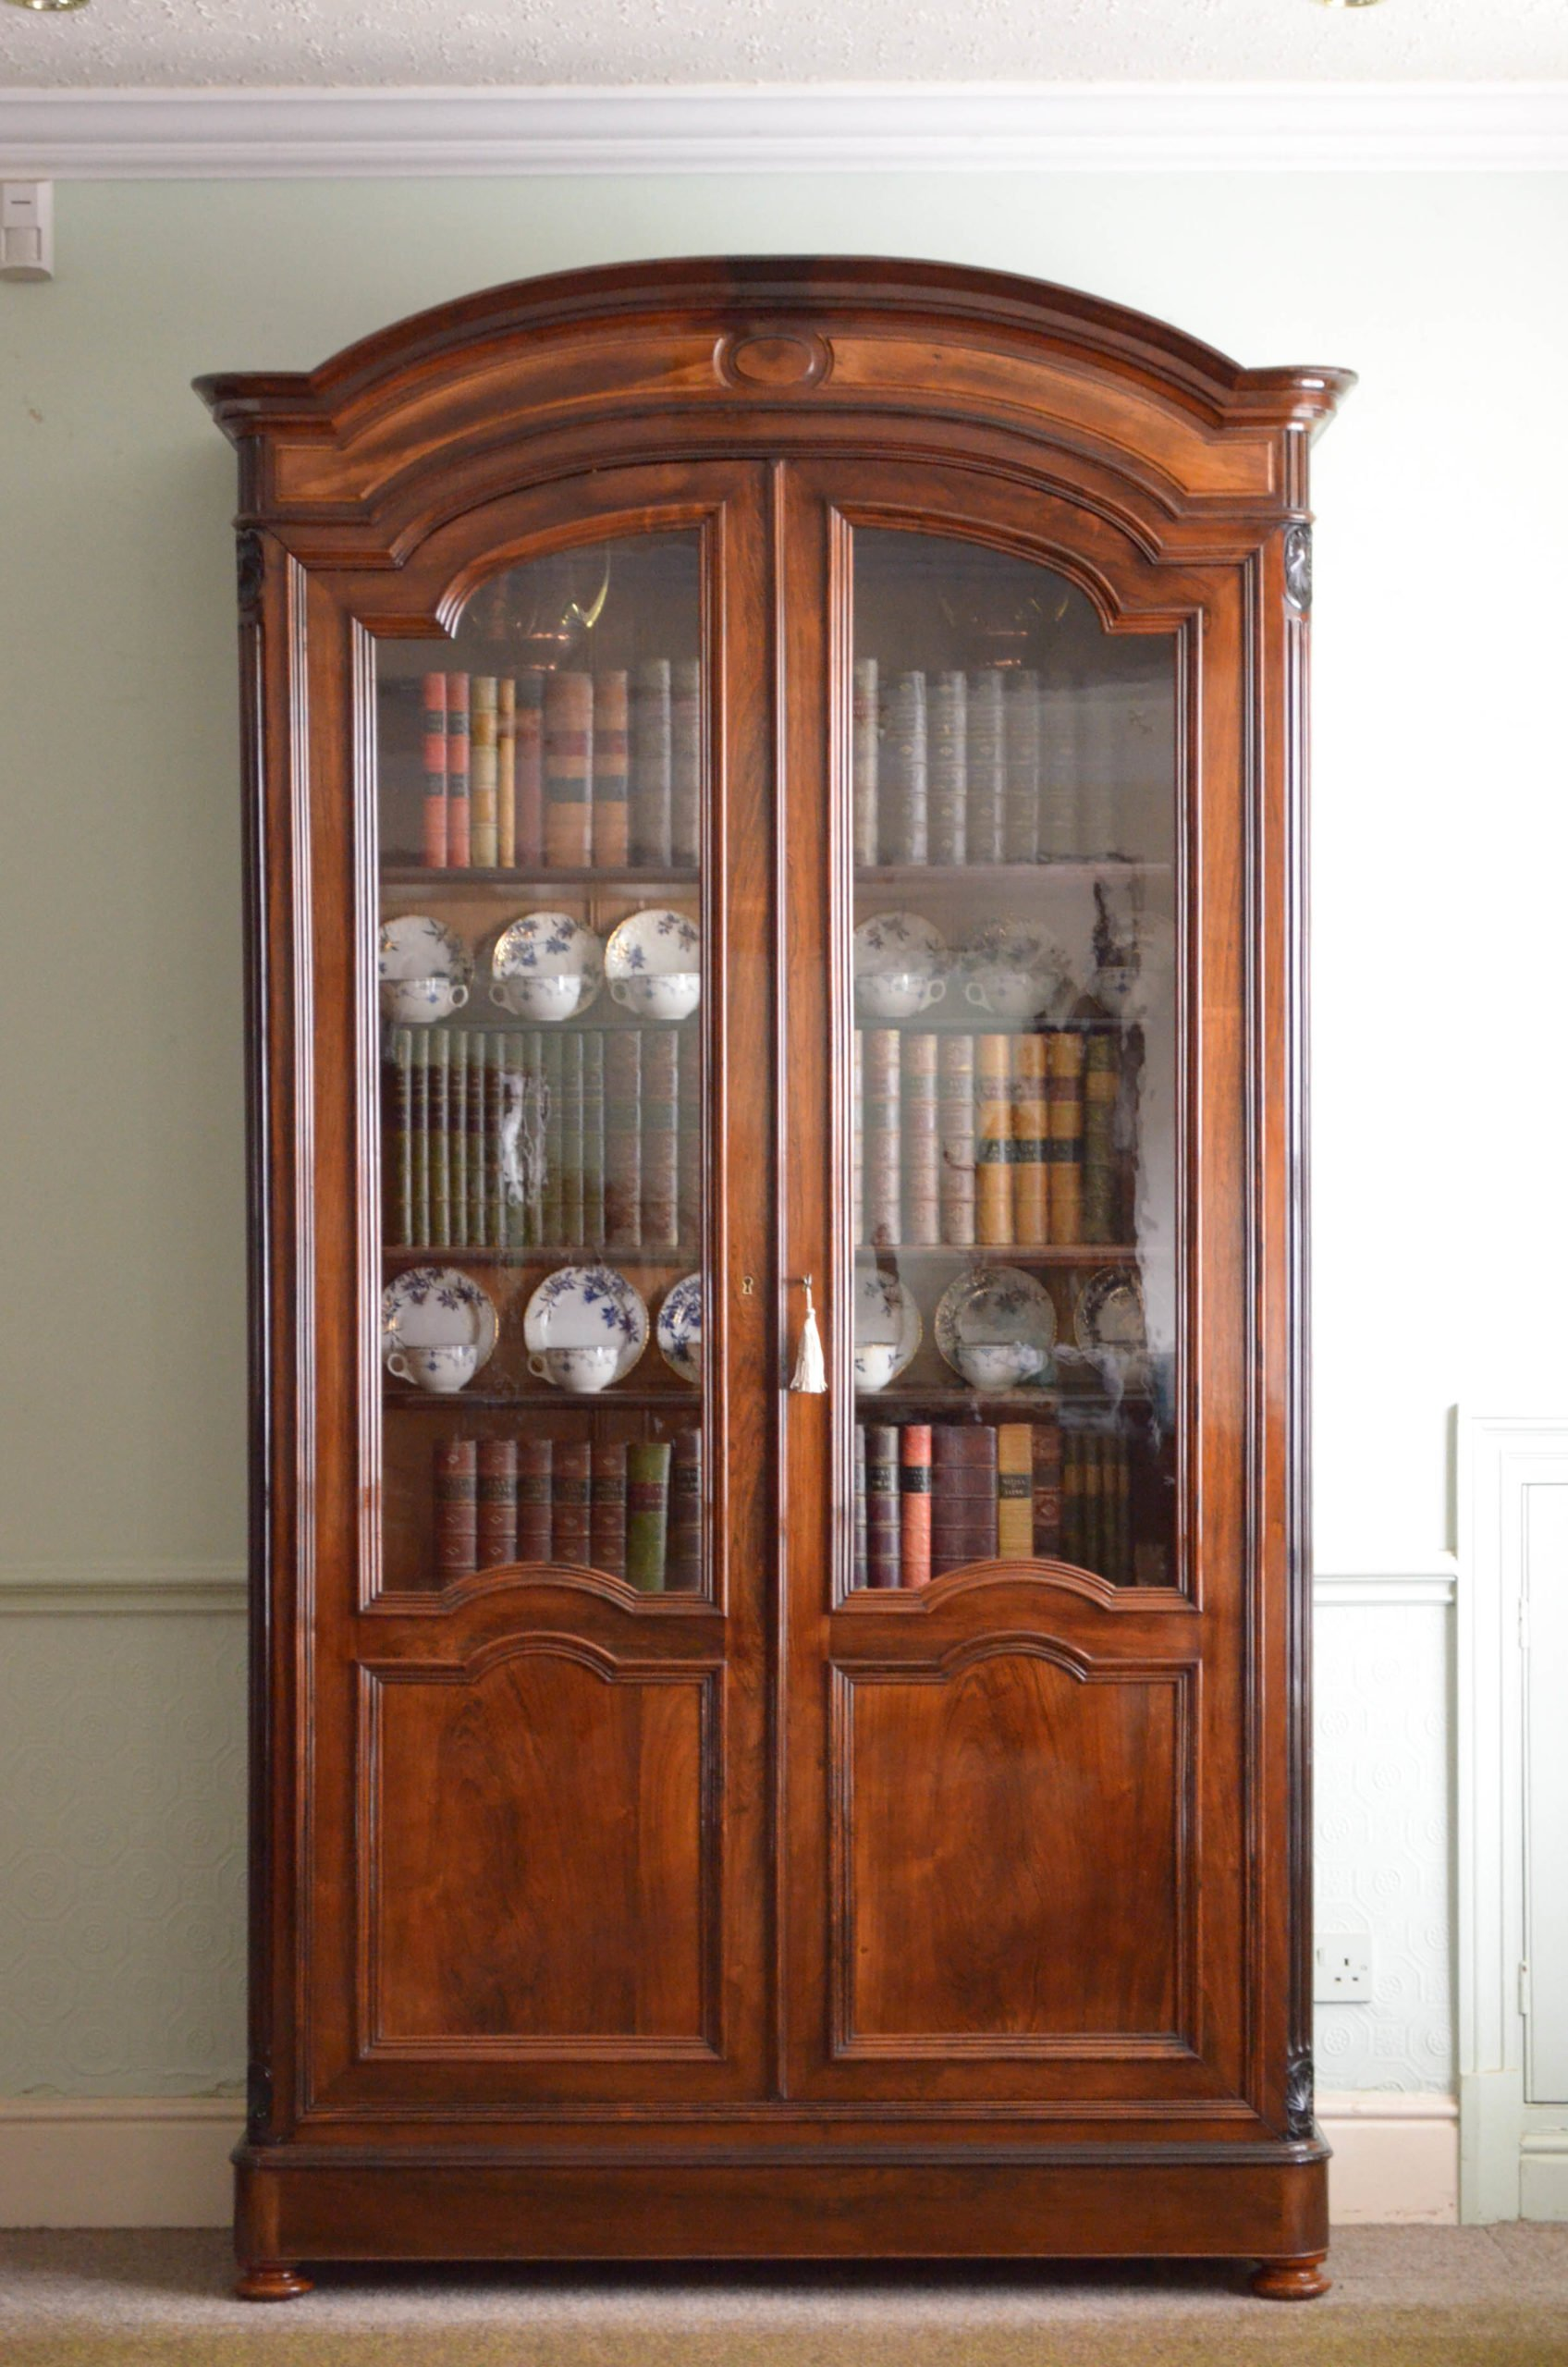 Superb XIXth Century Rosewood Bookcase or Display Cabinet